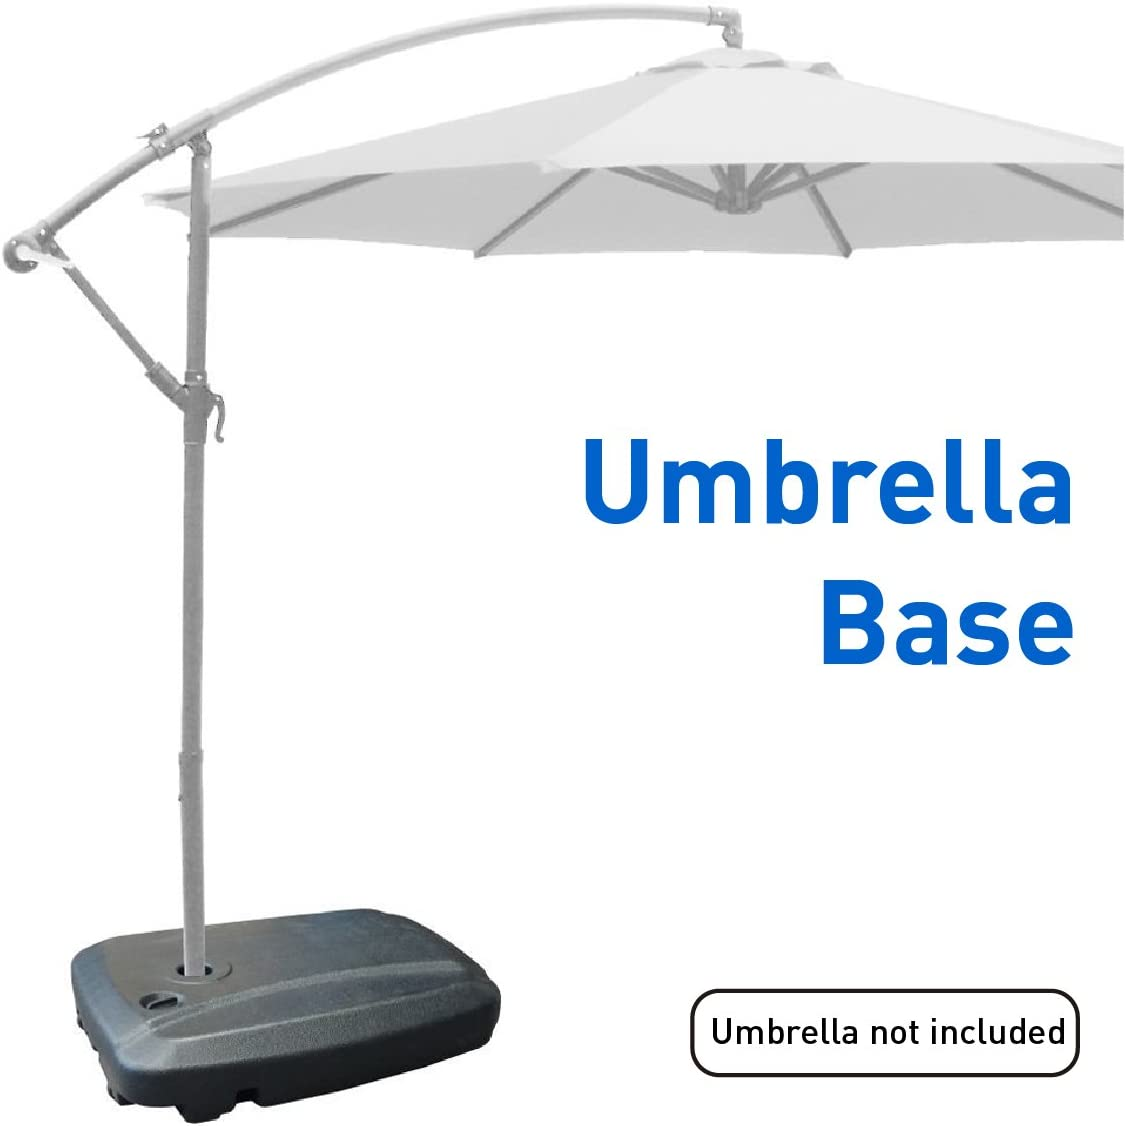 EasyGoProducts EGP-BASE-003 Universal Offset Umbrella Base Weight Capacity-Plasti, Black